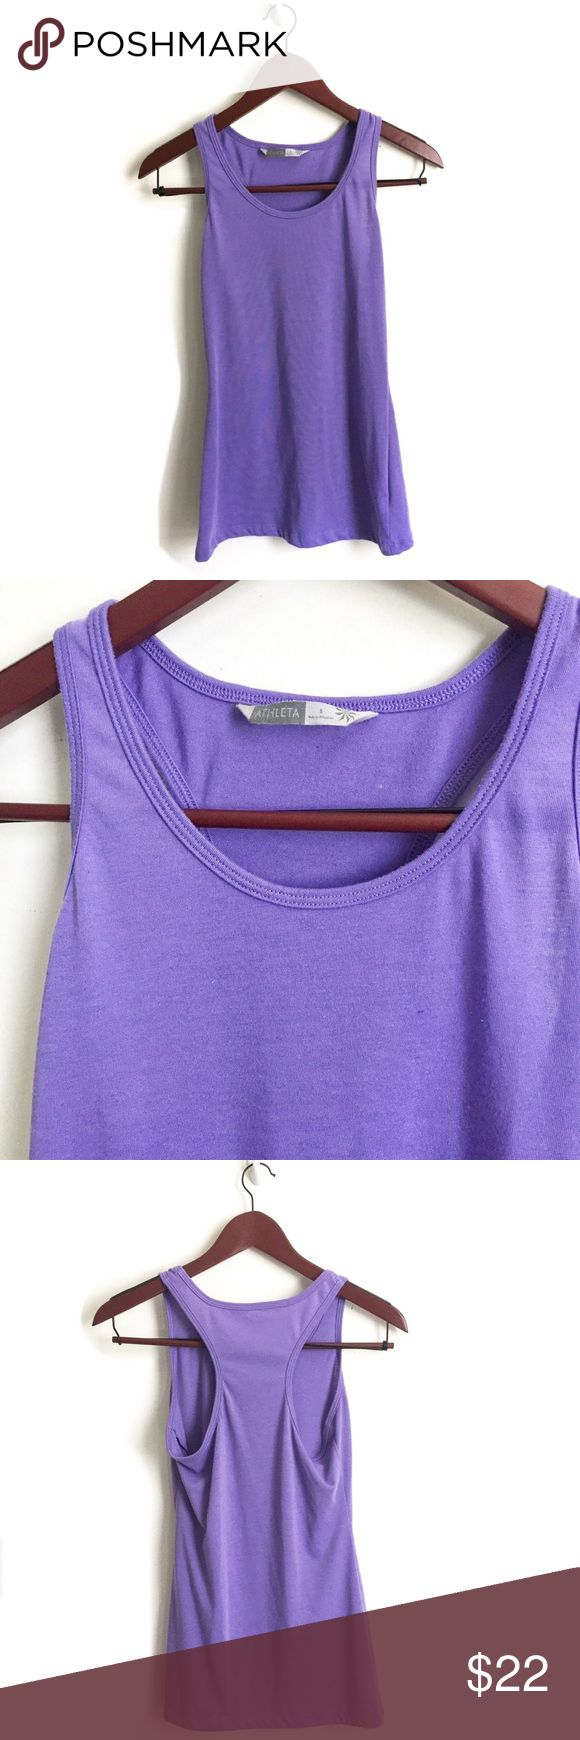 Athleta Shiva Purple Racerback Tank Athleta Tank Top ▫️Color: Purple ▫️Material: 60% polyester, 40% poly minerale ▫️Fit: True to Size (see measurements) ▫️Perfect for Working Out  ▫️Good Preowned Condition Athleta Tops Tank Tops